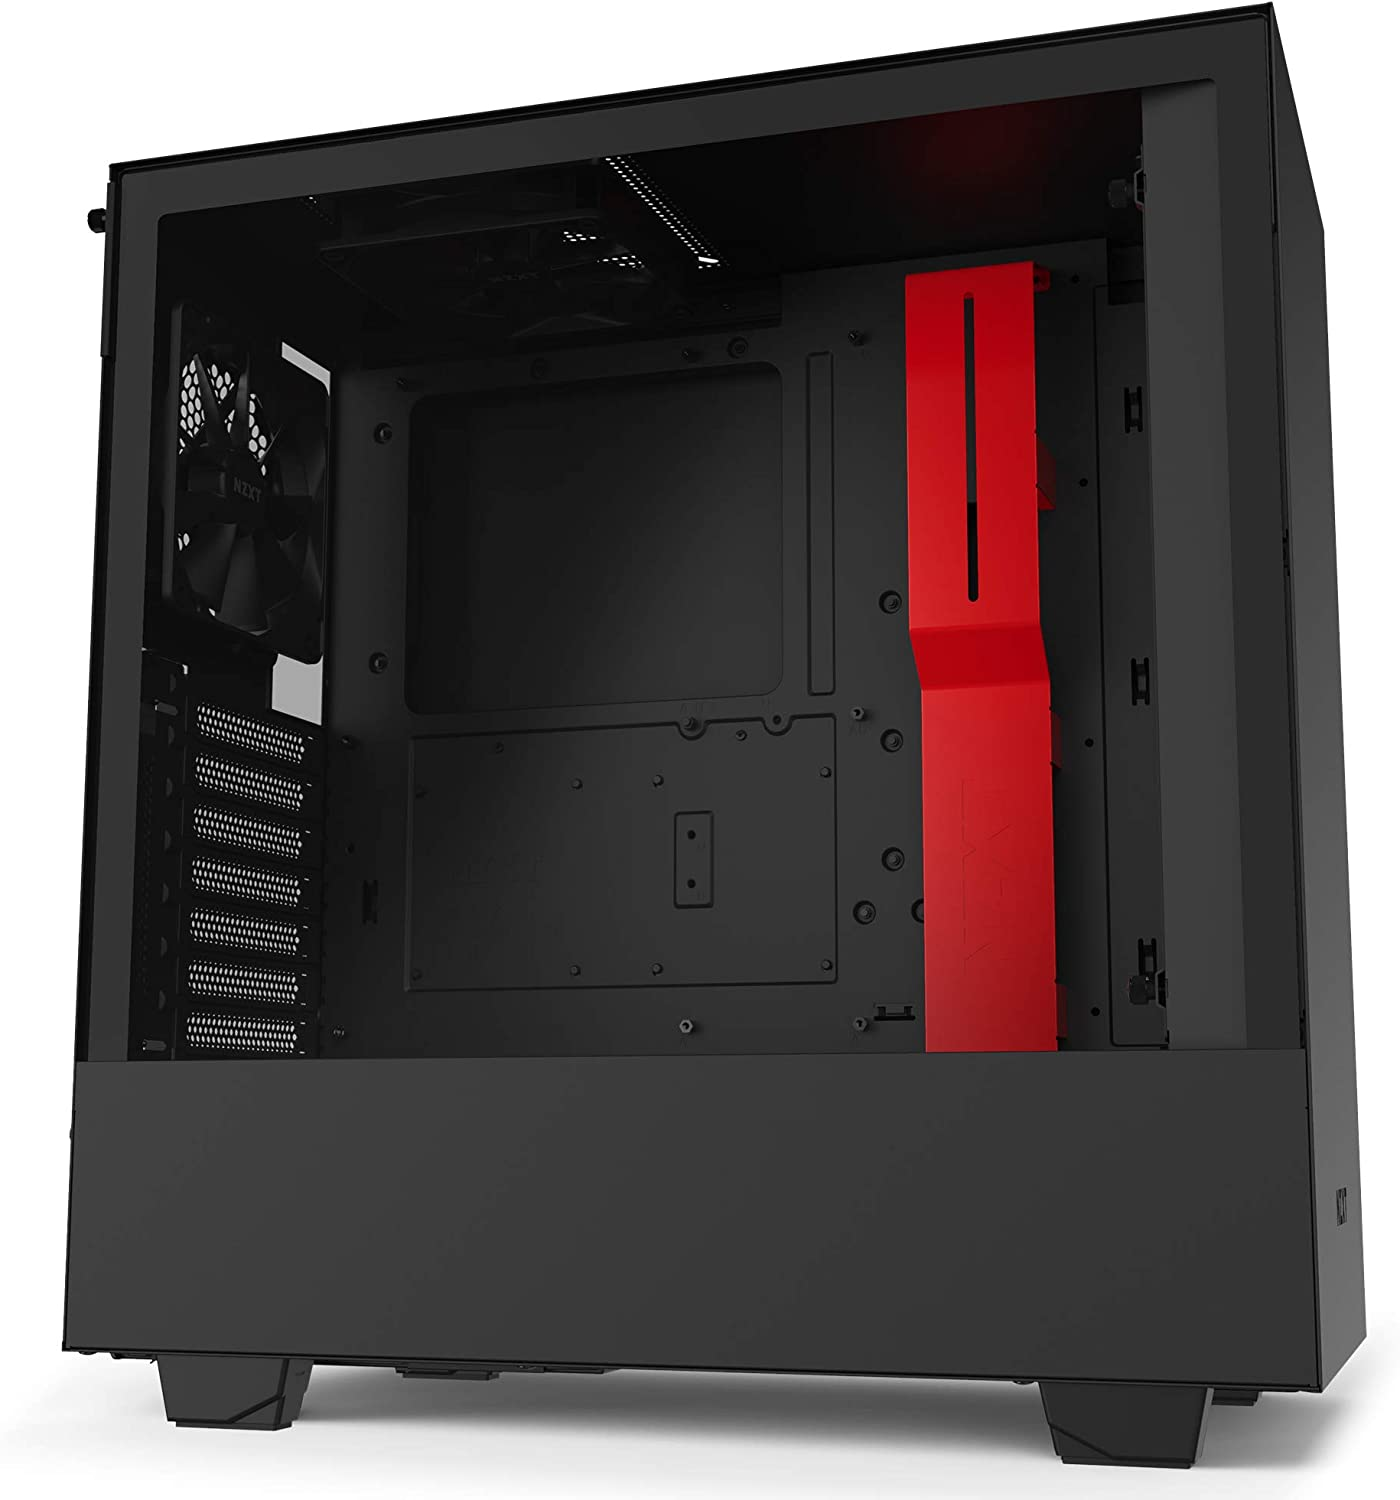 NZXT H510 - CA-H510B-BR - Compact ATX Mid-Tower PC Gaming Case - Front I/O USB Type-C Port - Tempered Glass Side Panel - Cable Management System - Water-Cooling Ready - Black/Red